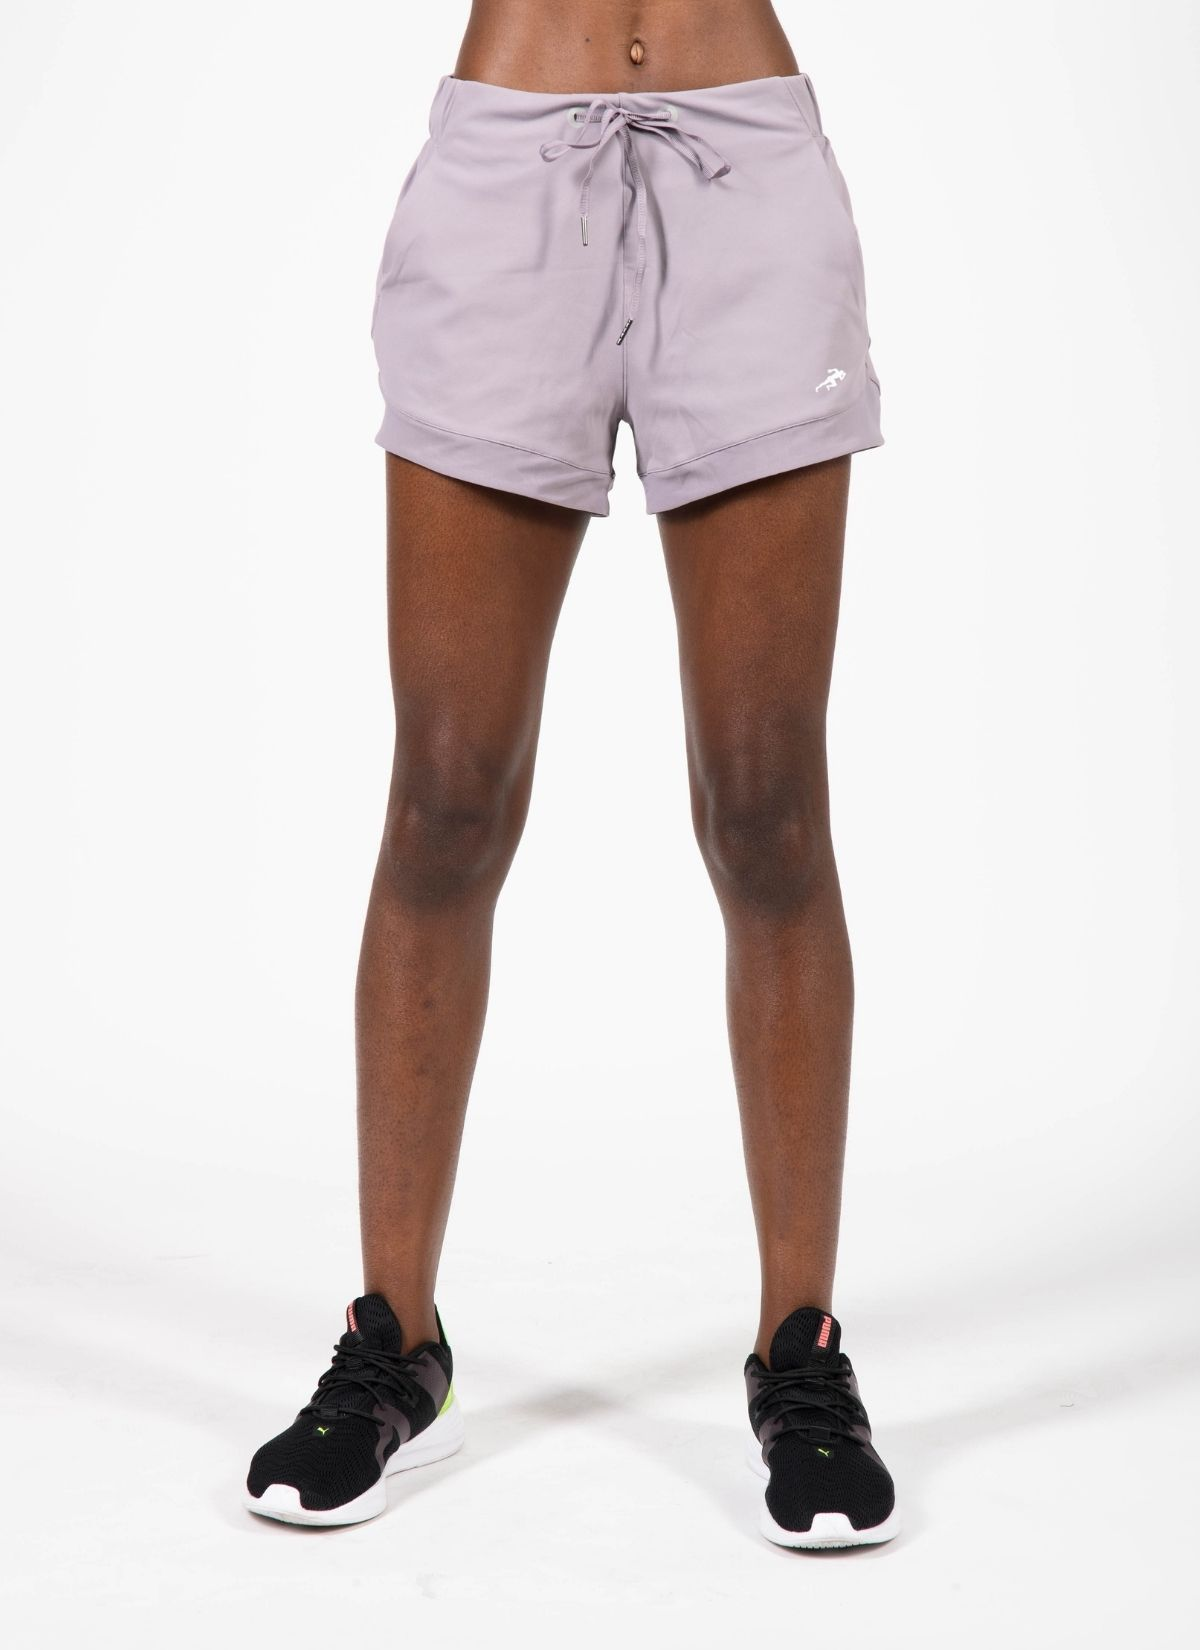 Ace Purple Shorts